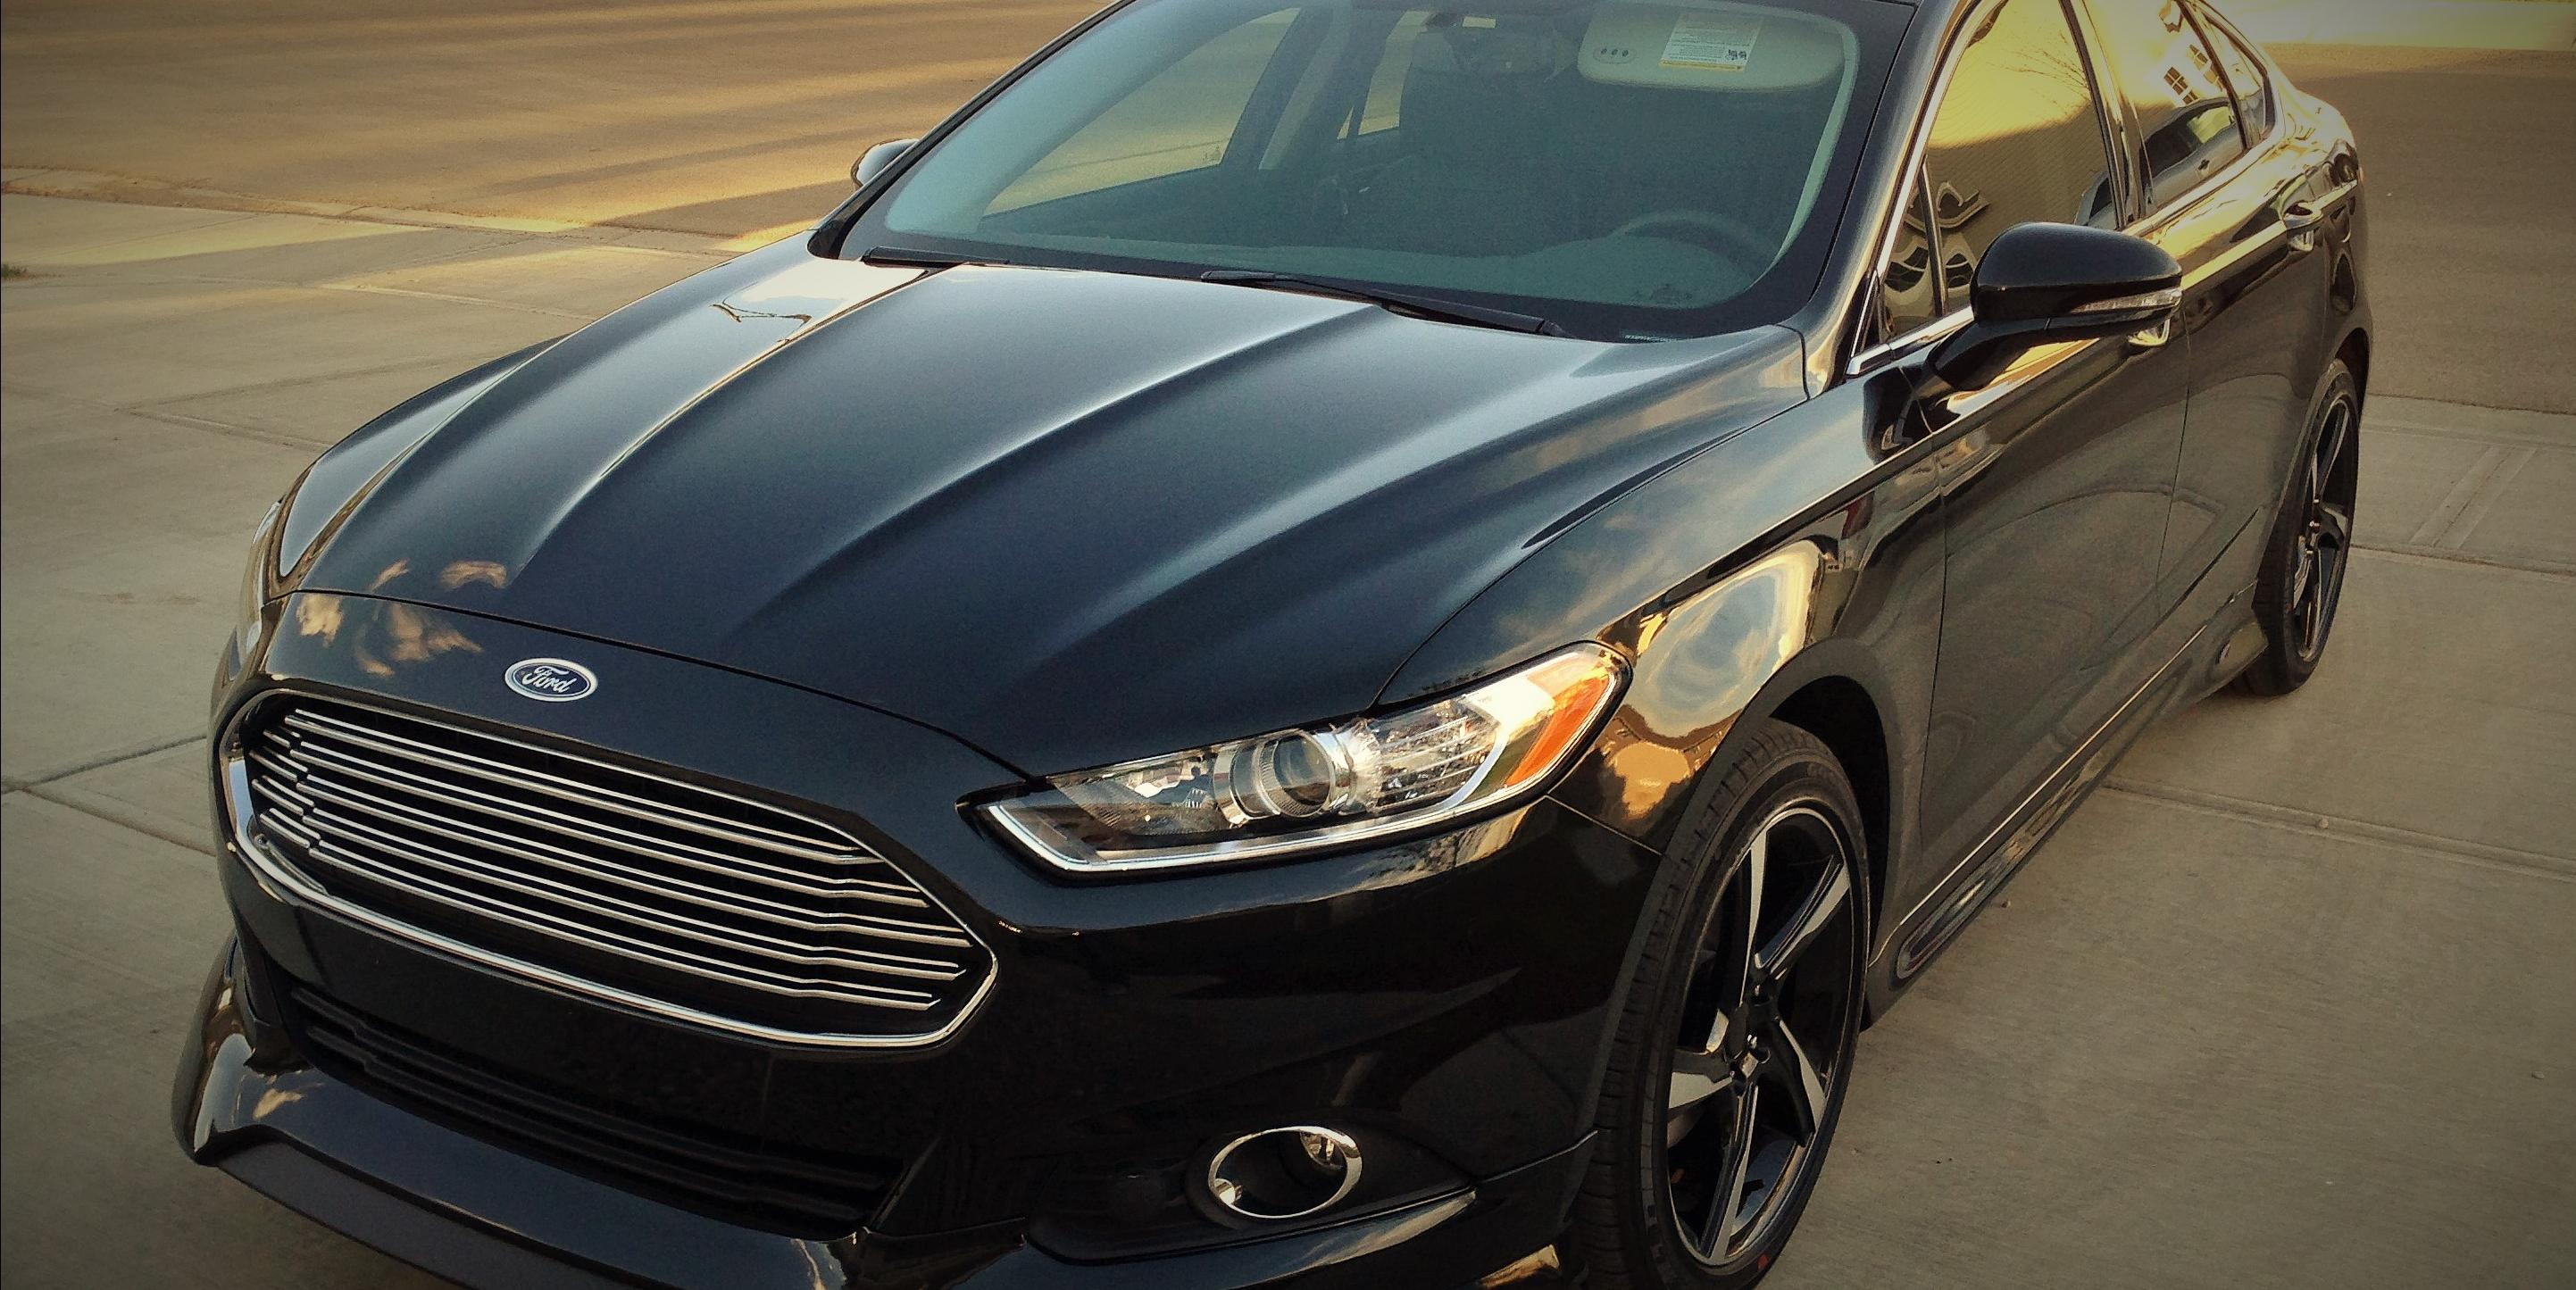 2014 Ford Fusion Rims >> clayton bigsby 2013 Ford FusionSE Specs, Photos ...